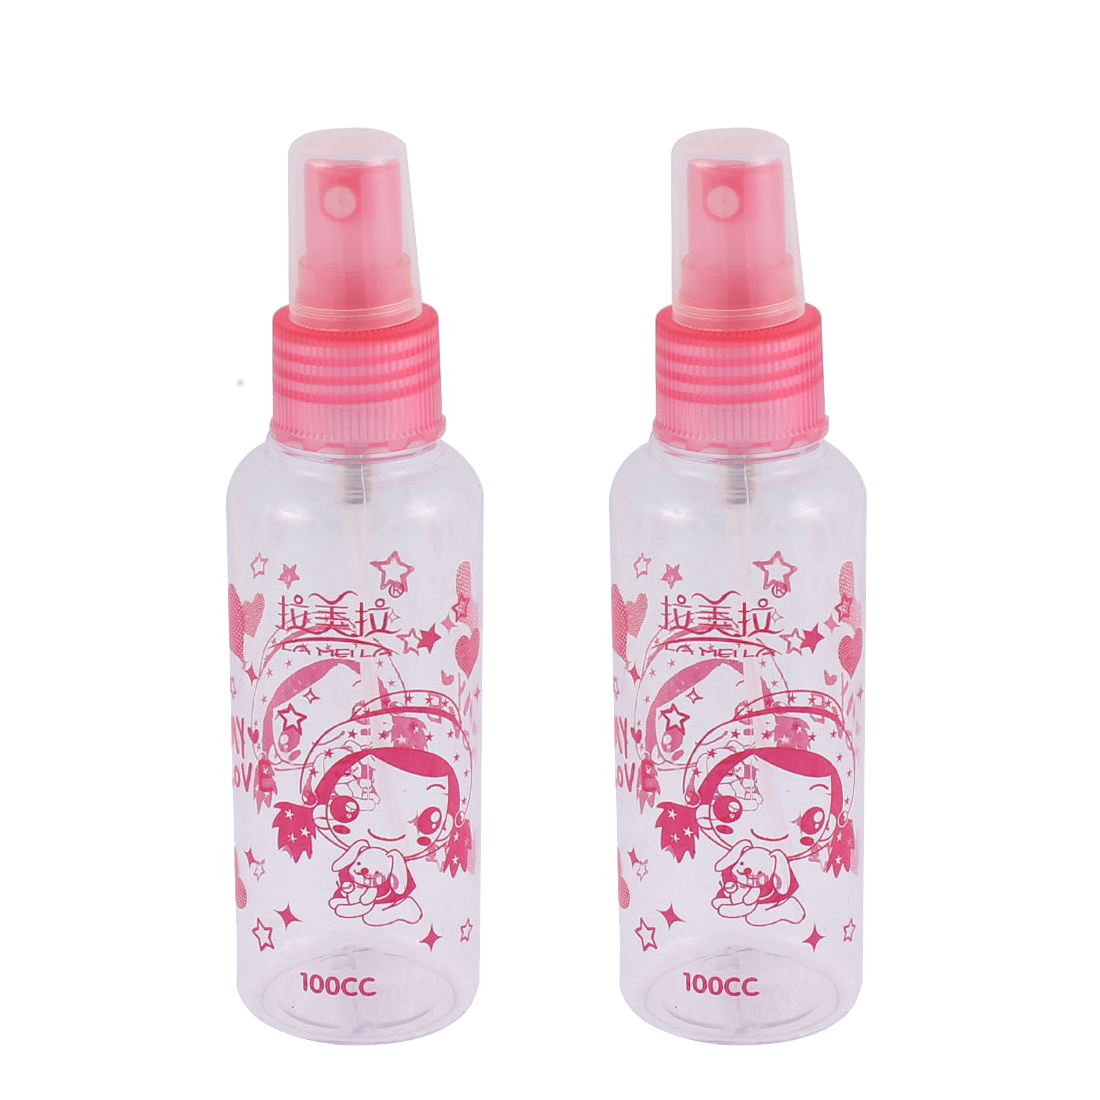 Girls Make Up Liquid Plastic Cartoon Patten Spray Bottle Pink 100ml 2pcs